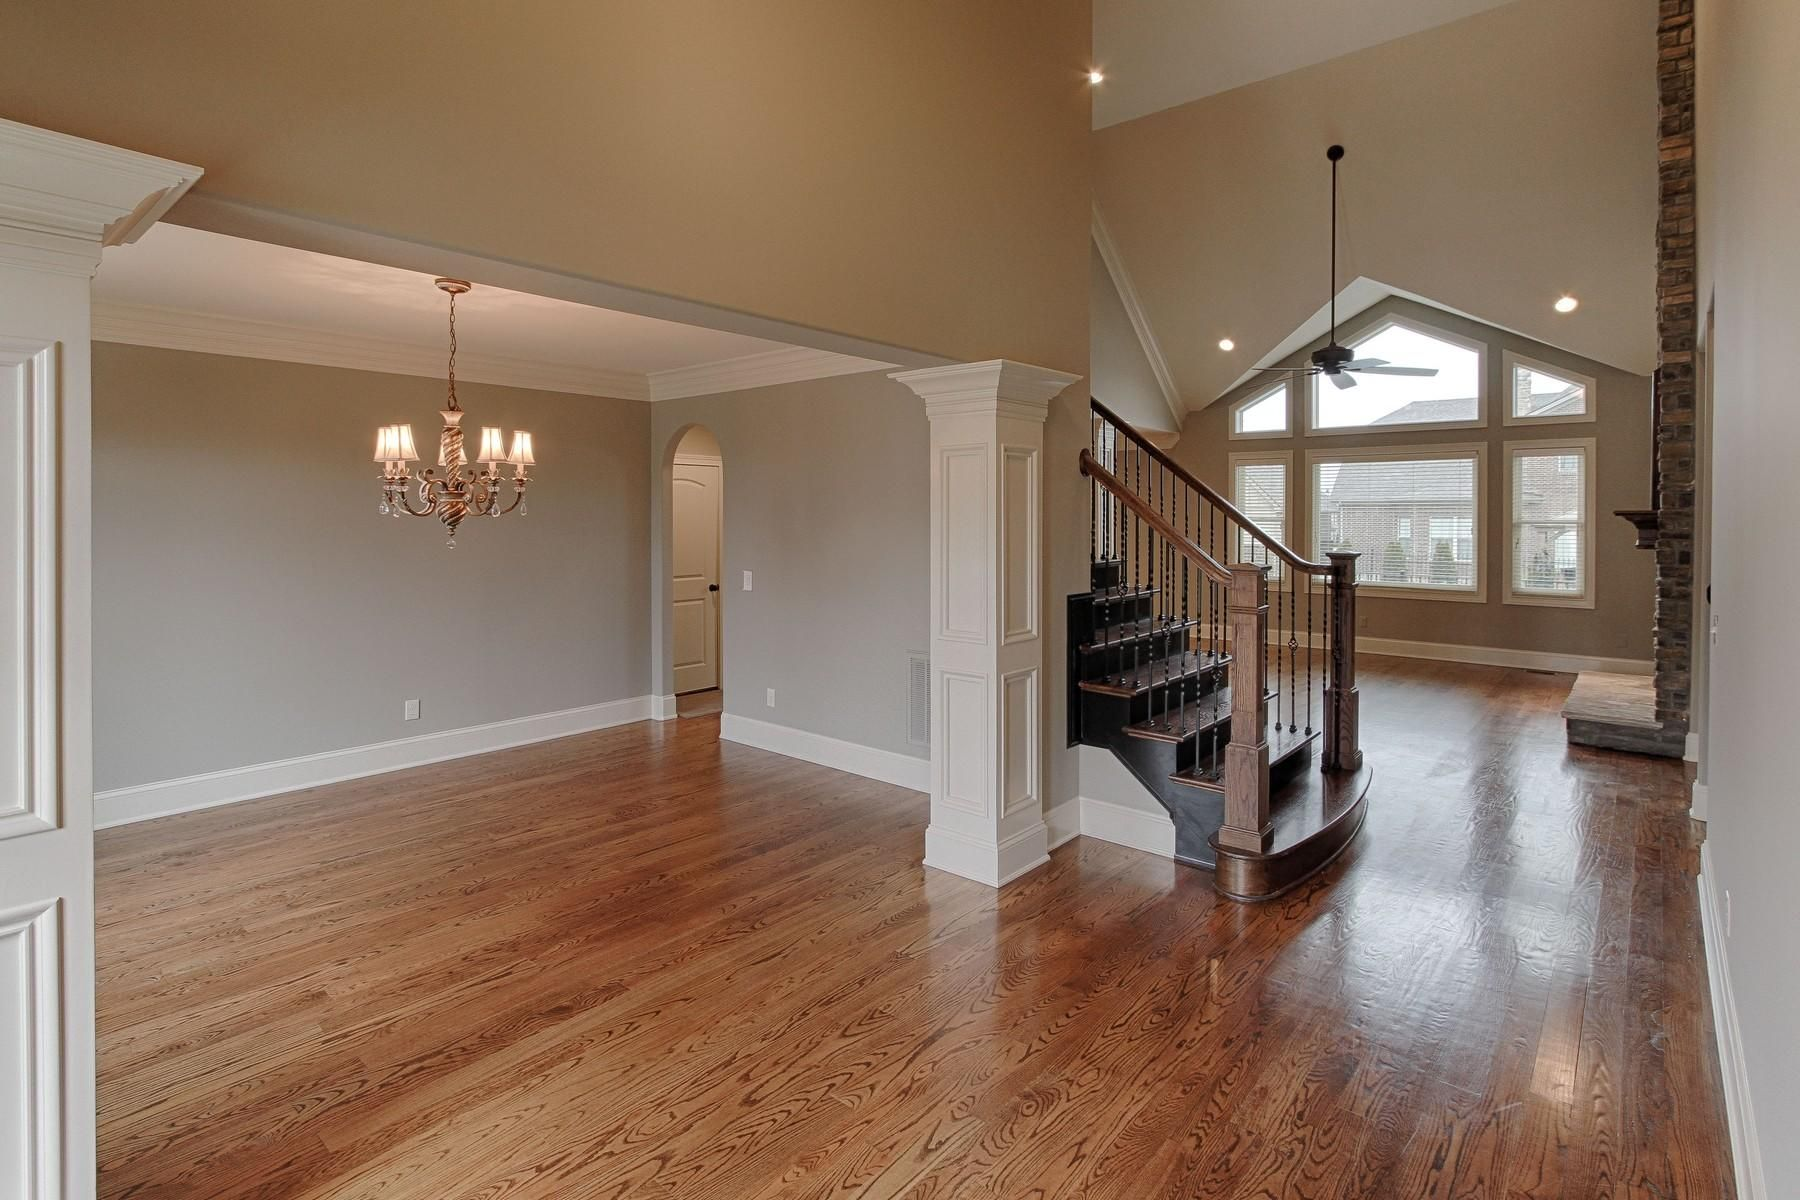 Dining room open to foyer